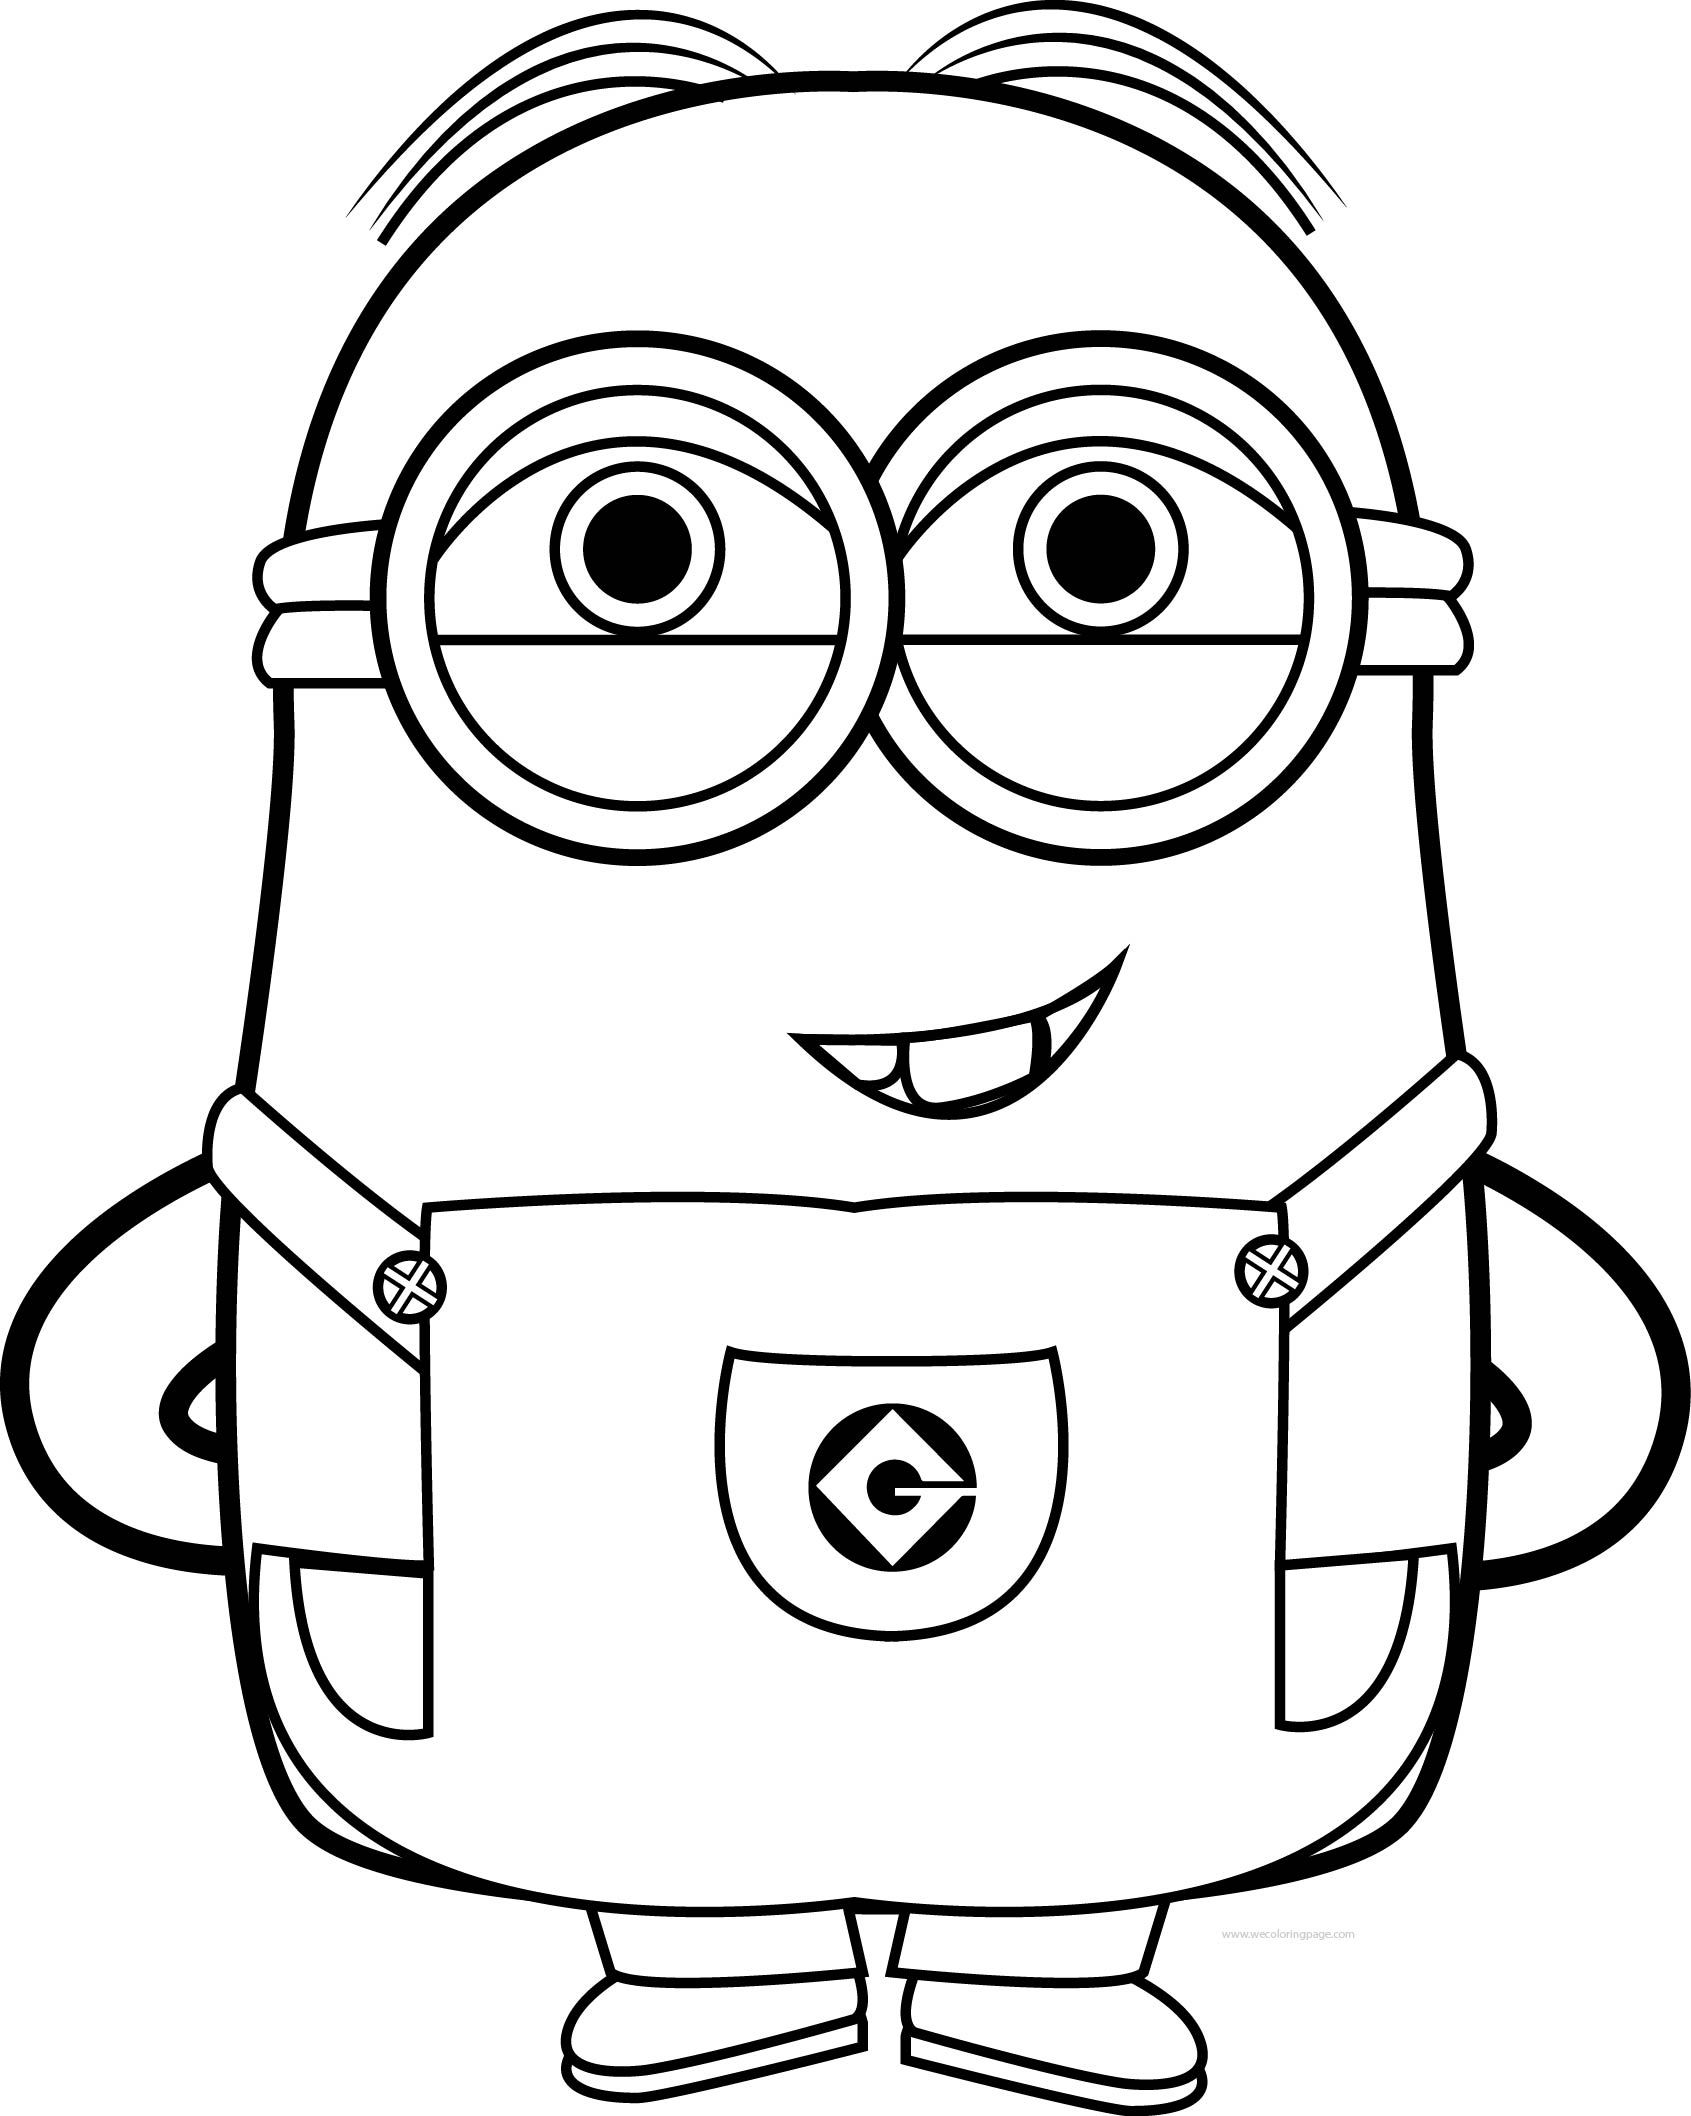 coloring pages minions angen - photo#44